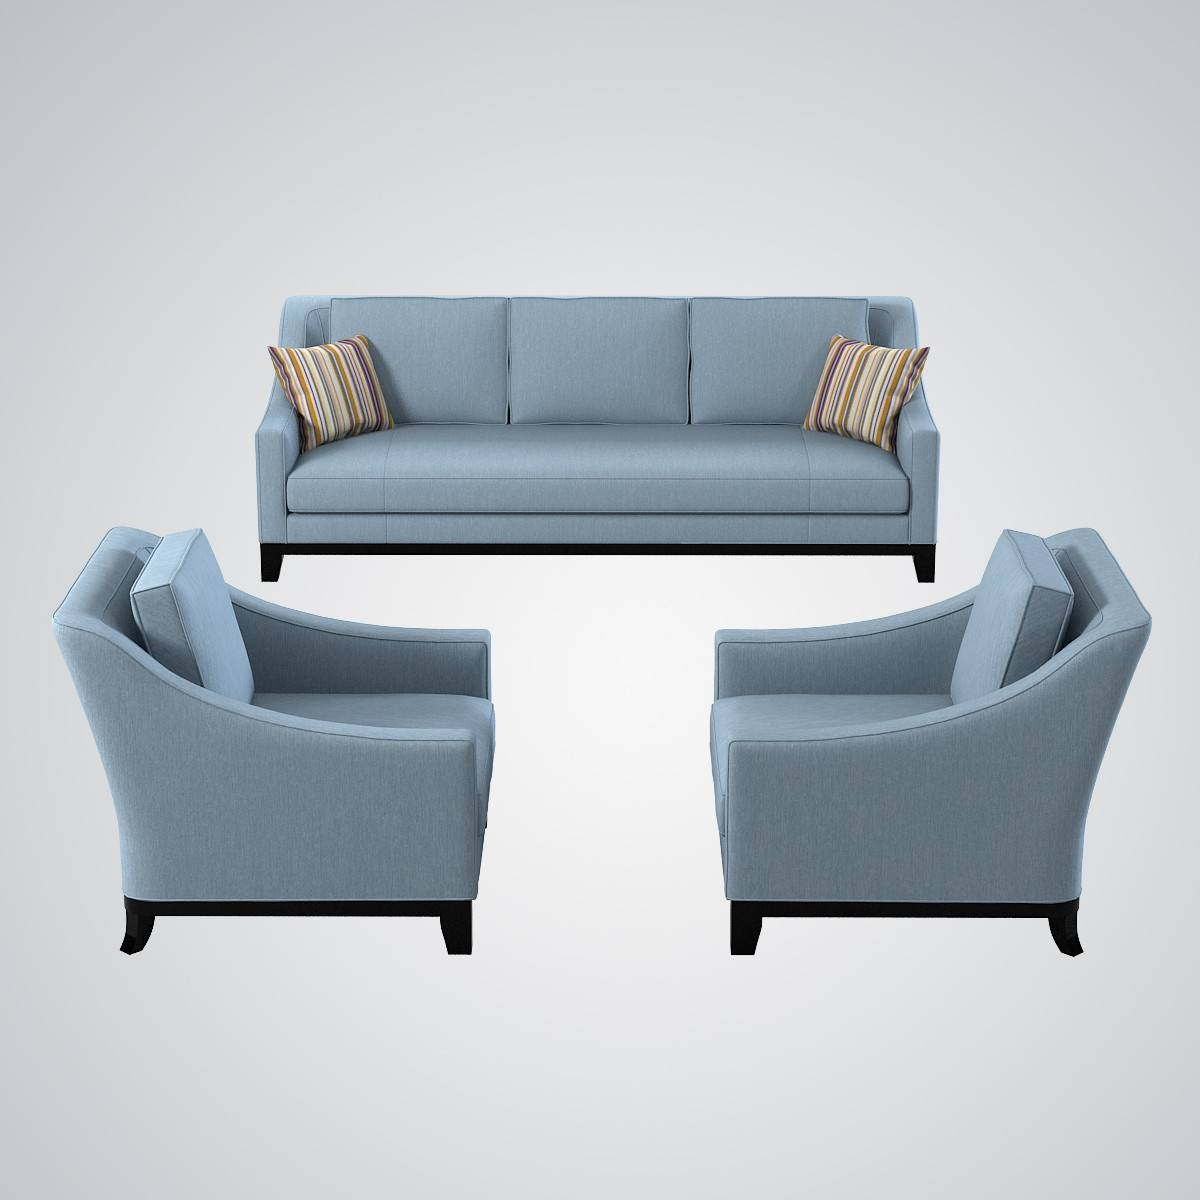 Sofa 3D Models | Turbosquid Throughout Chair Sofas (View 16 of 30)